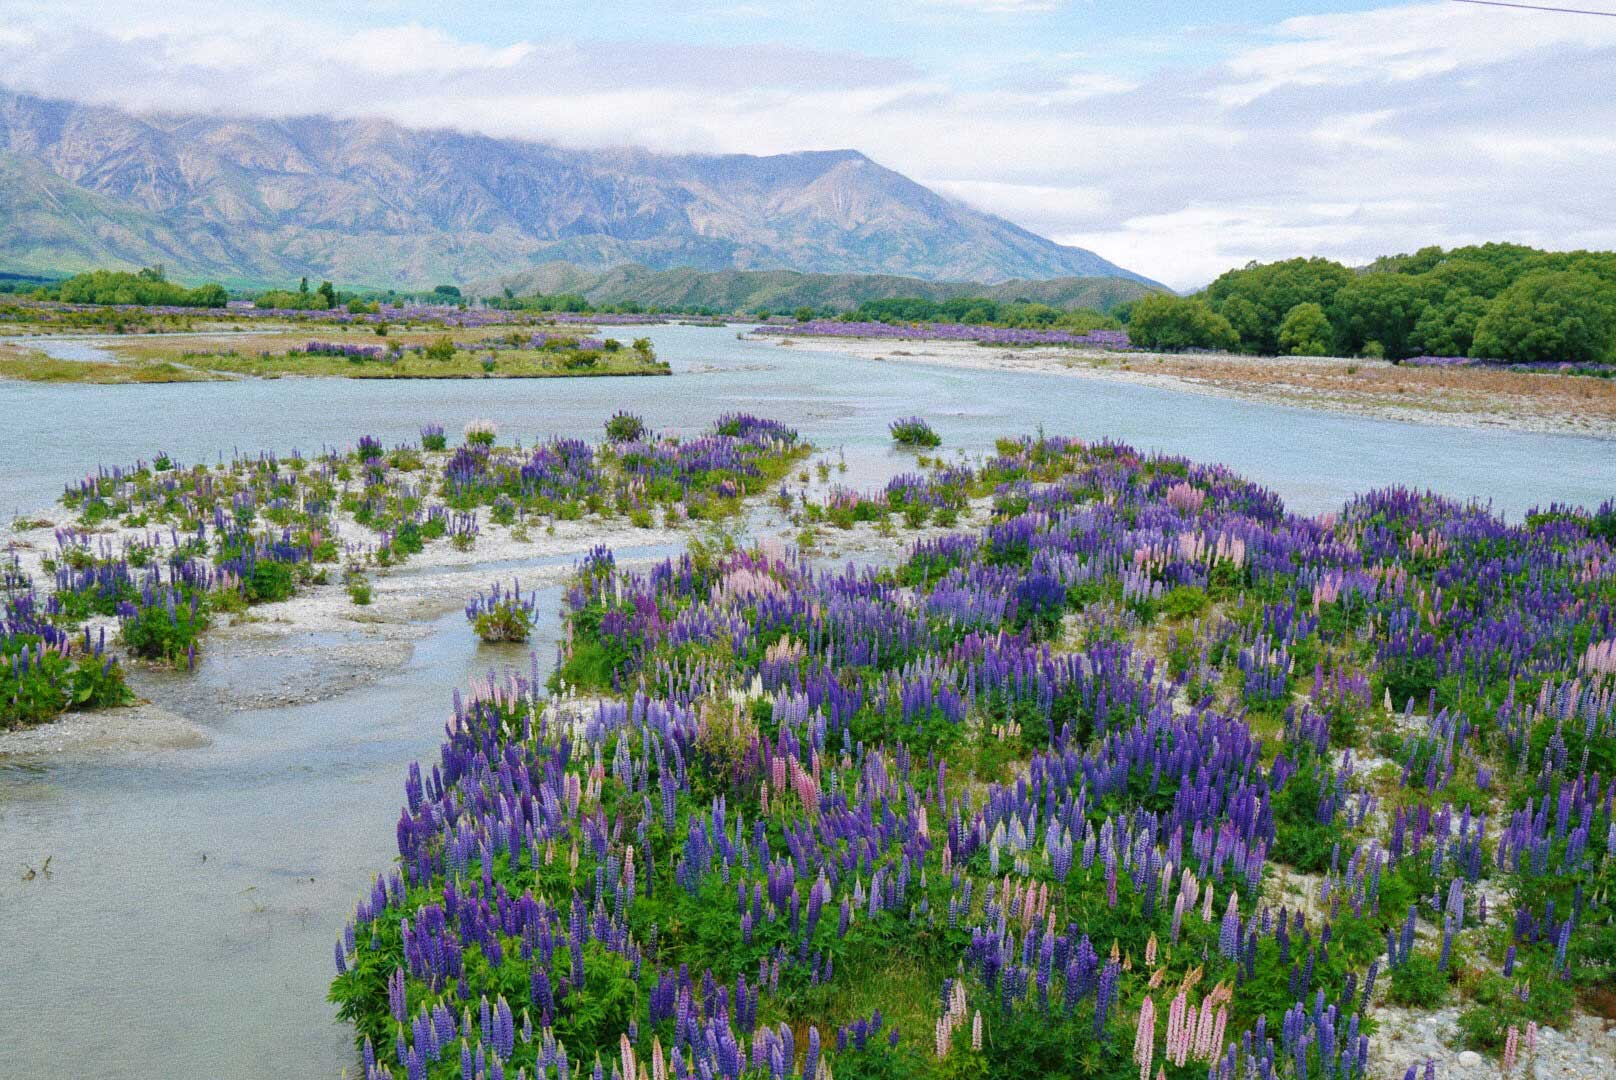 thereafterish, New Zealand River Ahuriri glacial blue river with lupuins blooming